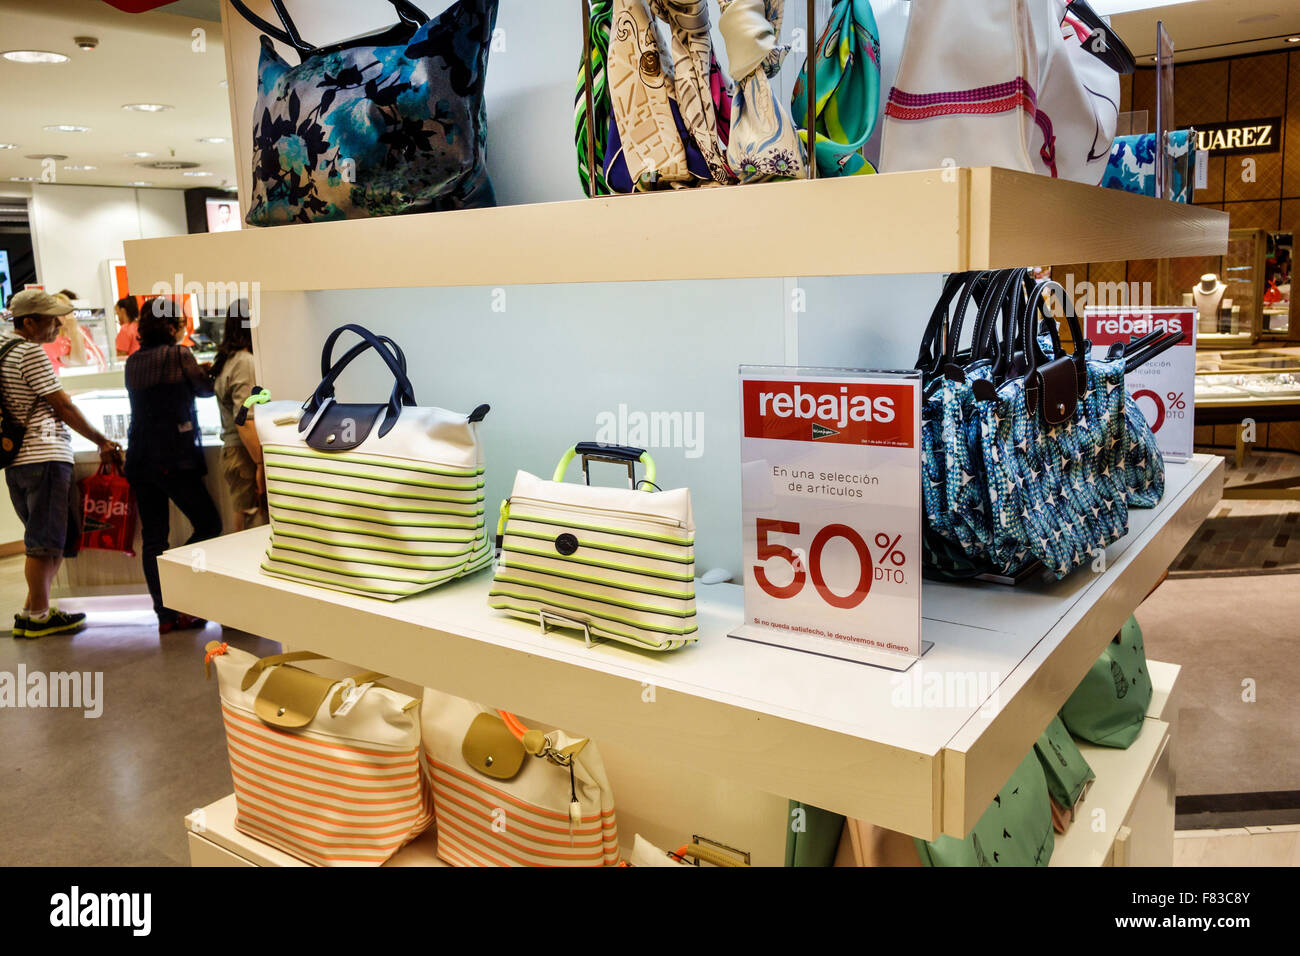 33a12214555 Spain Europe Spanish Hispanic Madrid Centro Plaza de Callao El Corte Ingles  department store shopping inside interior retail display sale Longchamp Fr